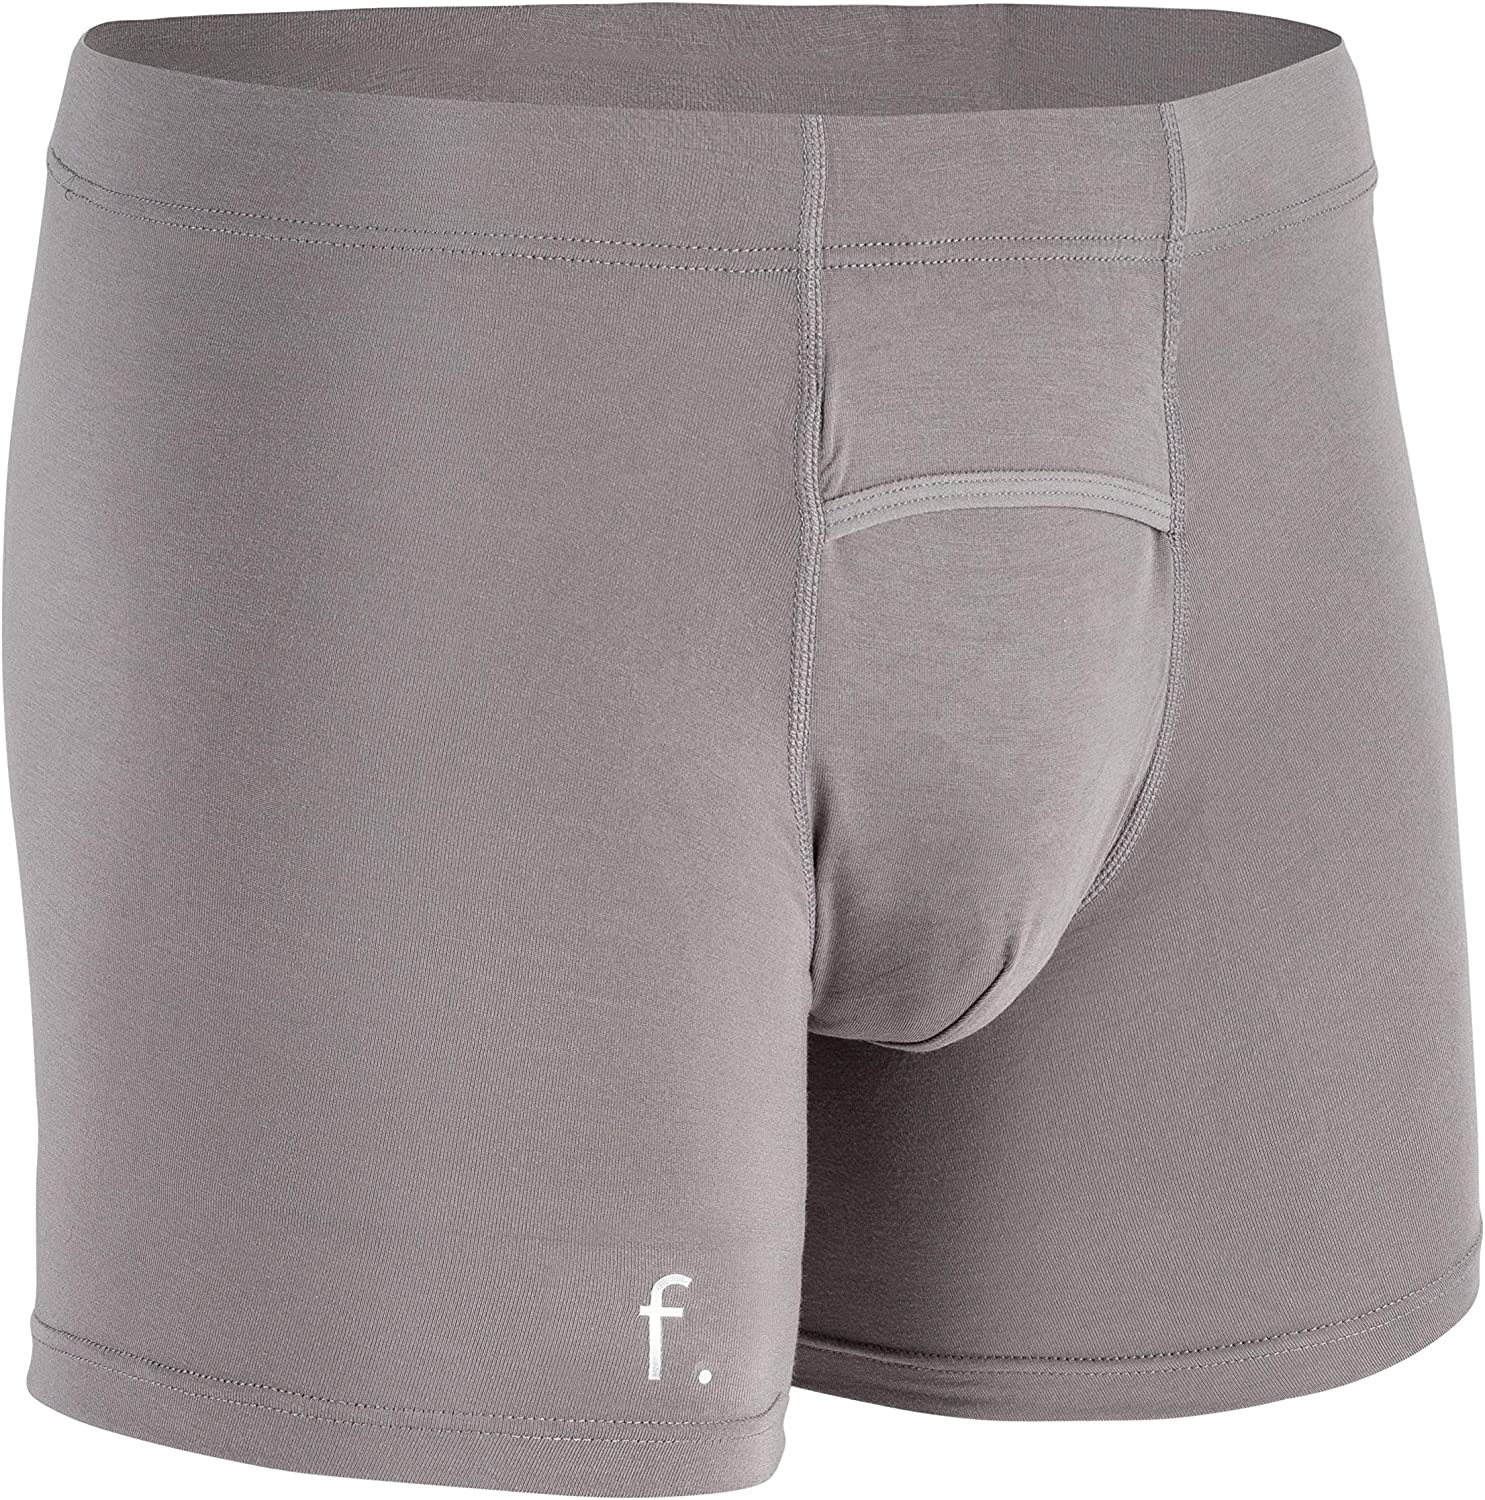 Riparo Silver-Lined Boys Boxer Briefs to Shield Against EMF Radiation